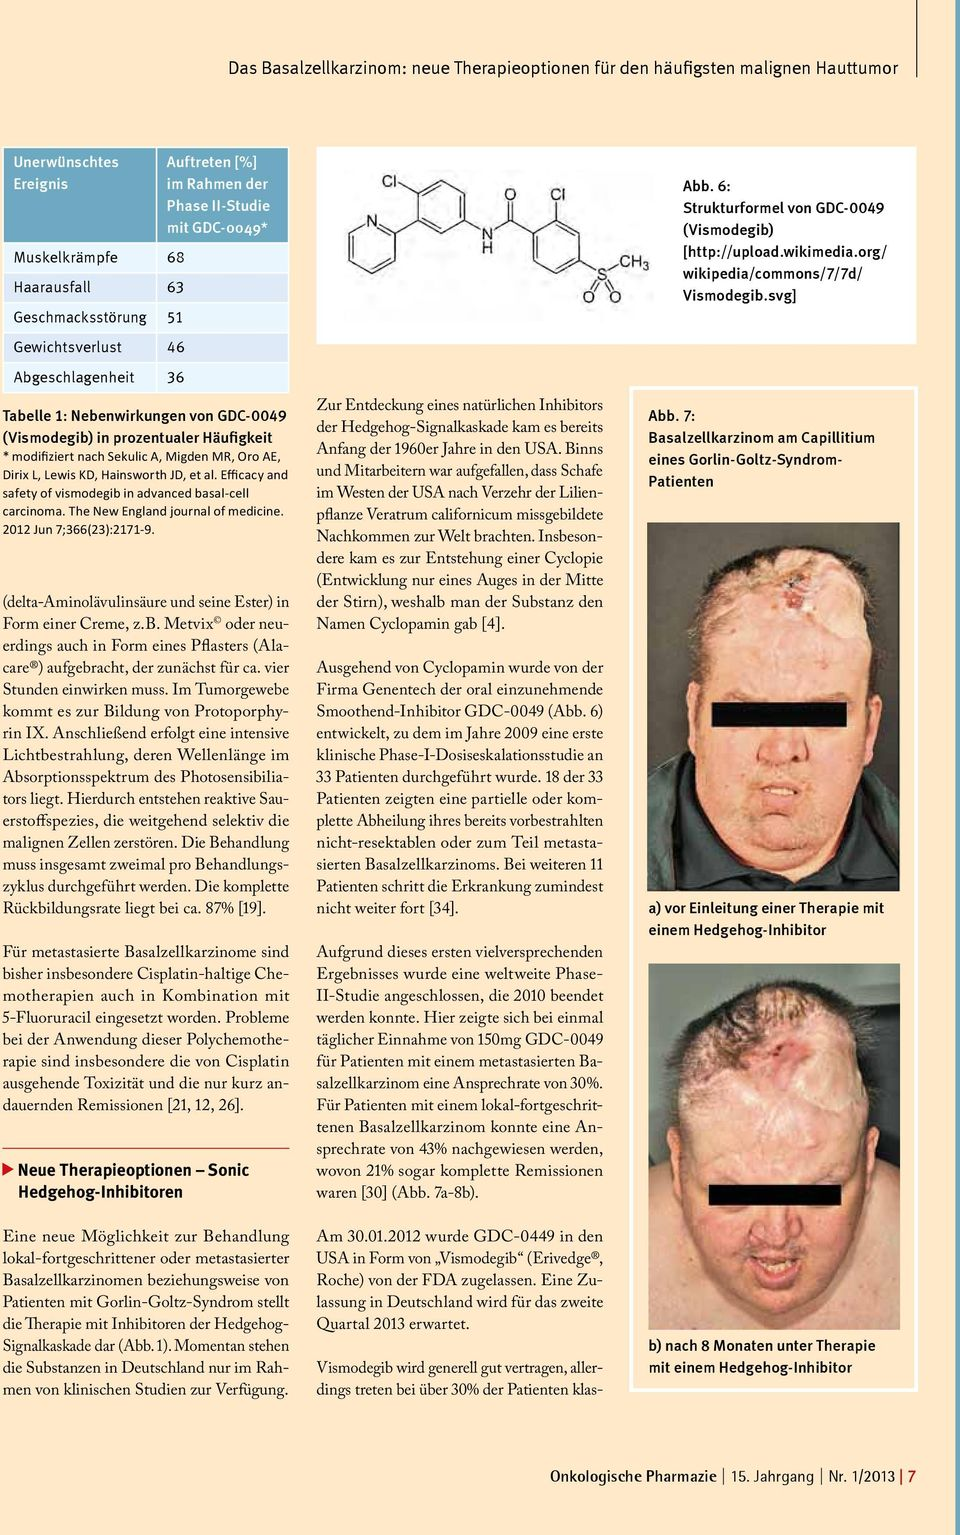 Lewis KD, Hainsworth JD, et al. Efficacy and safety of vismodegib in advanced basal-cell carcinoma. The New England journal of medicine. 2012 Jun 7;366(23):2171-9.